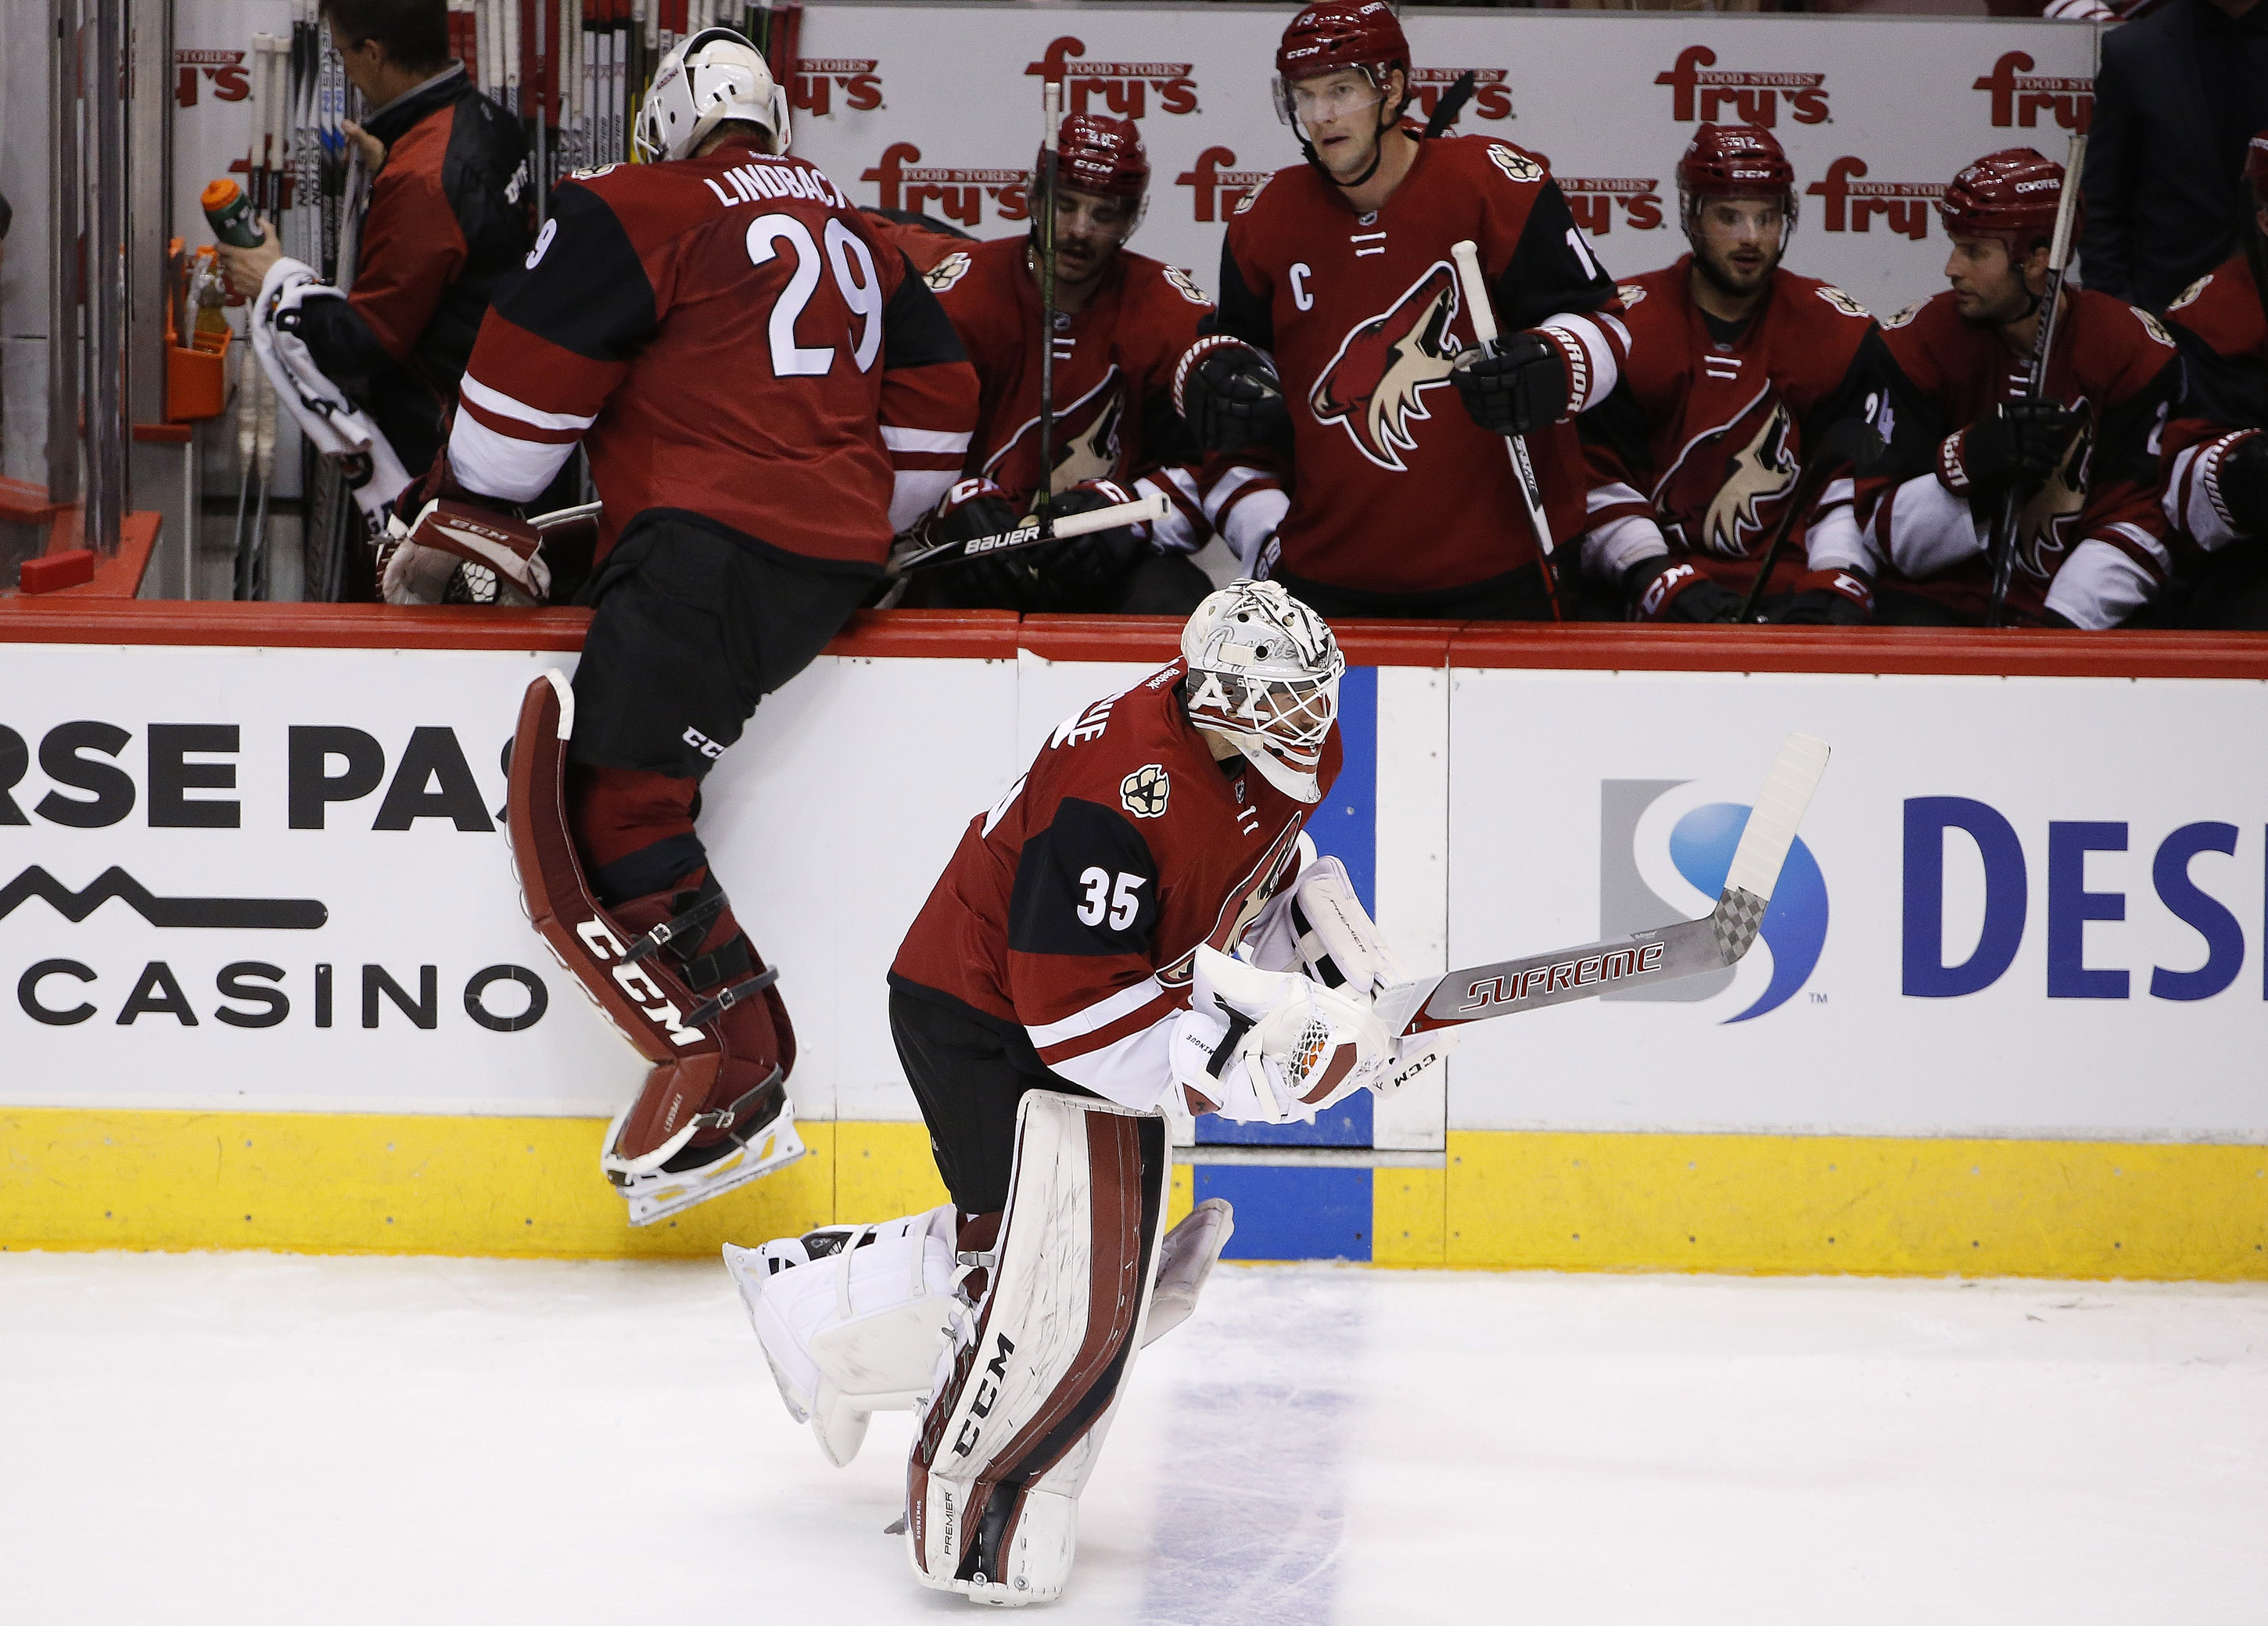 Arizona Coyotes' Louis Domingue (35) replaces Anders Lindback (29), of Sweden, during the second period of an NHL hockey game against the Columbus Blue Jackets, Thursday, Dec. 17, 2015, in Glendale, Ariz. (AP Photo/Ross D. Franklin)